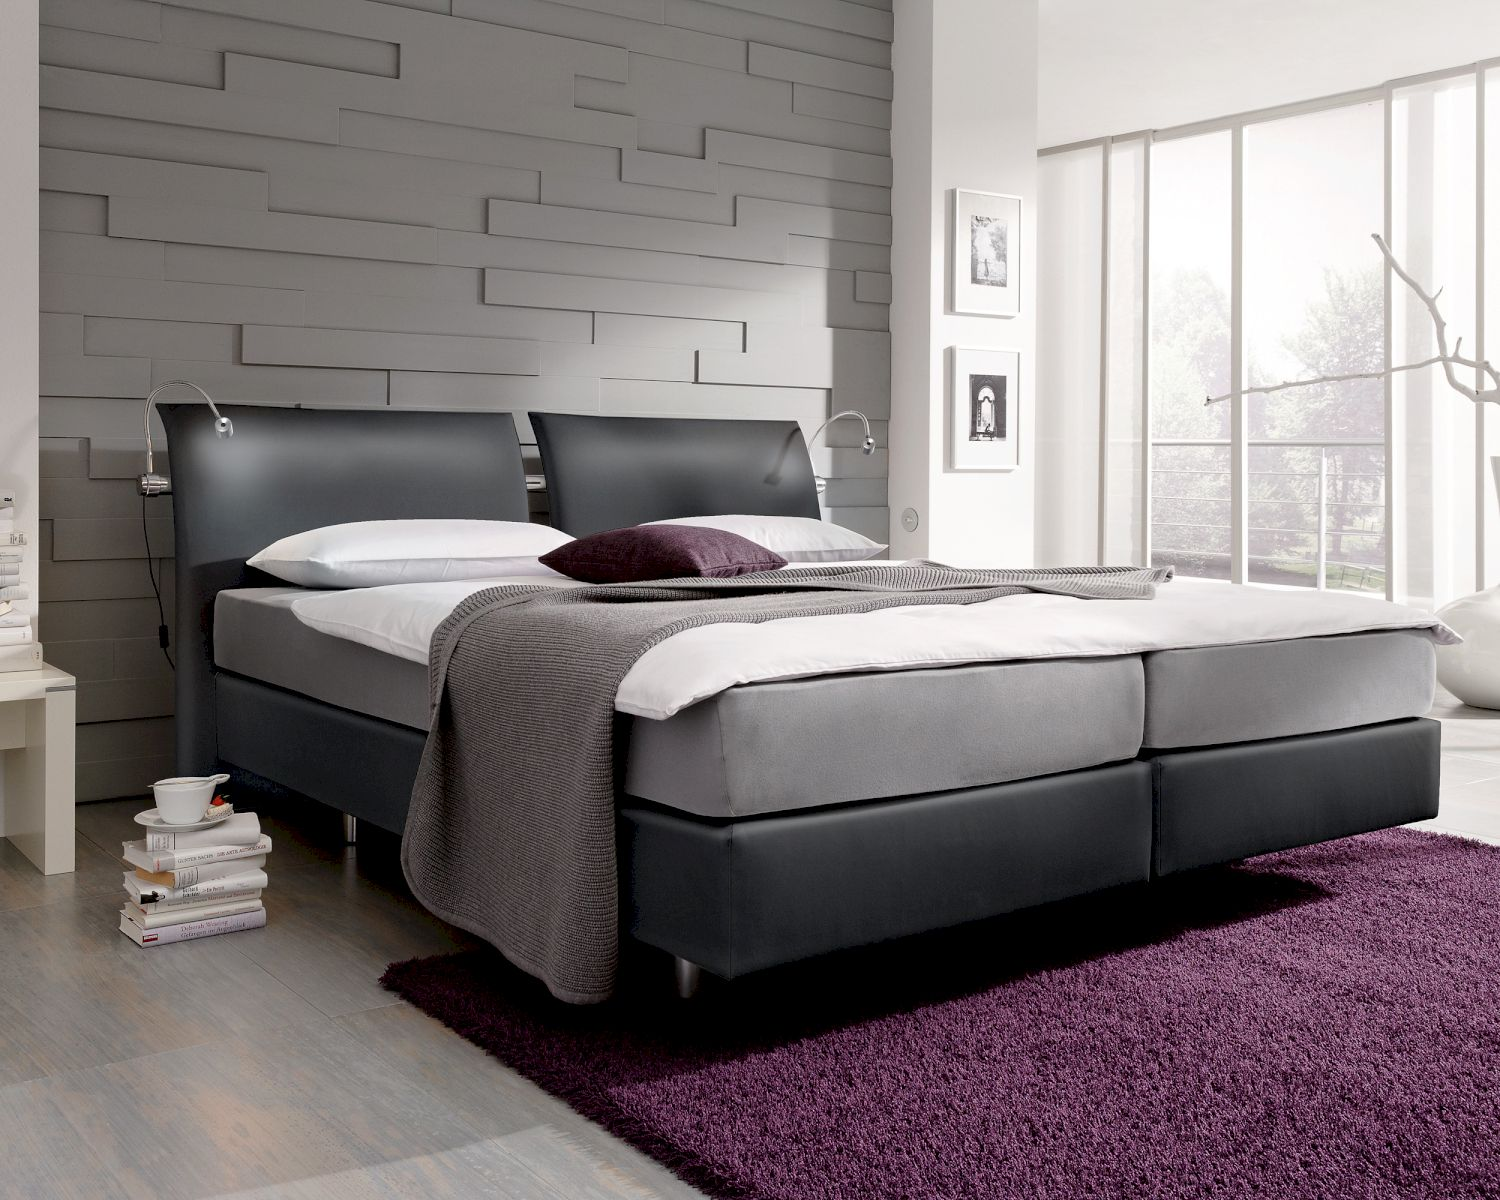 femira couture chianti boxspringbett bei. Black Bedroom Furniture Sets. Home Design Ideas